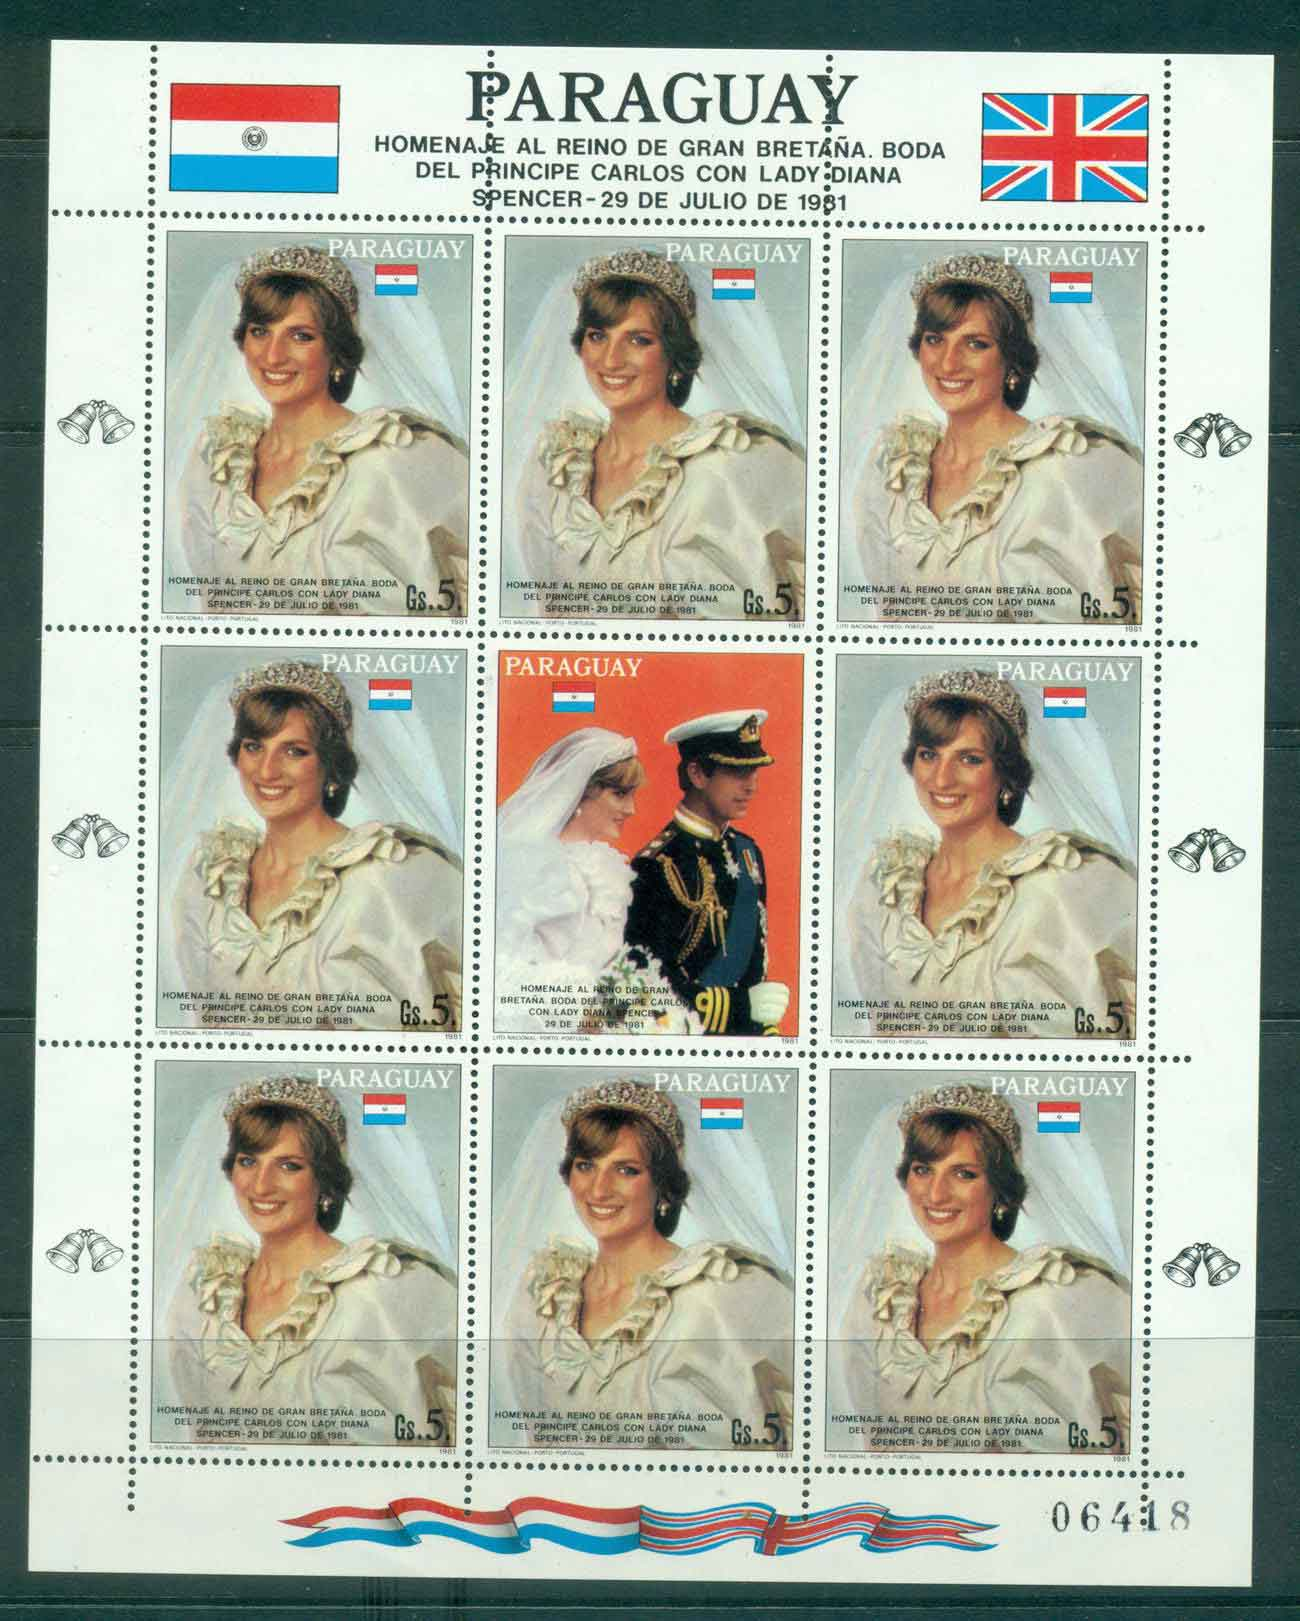 Paraguay 1981 Charles & Diana Wedding Sheetlet 5g + label MUH Lot45158